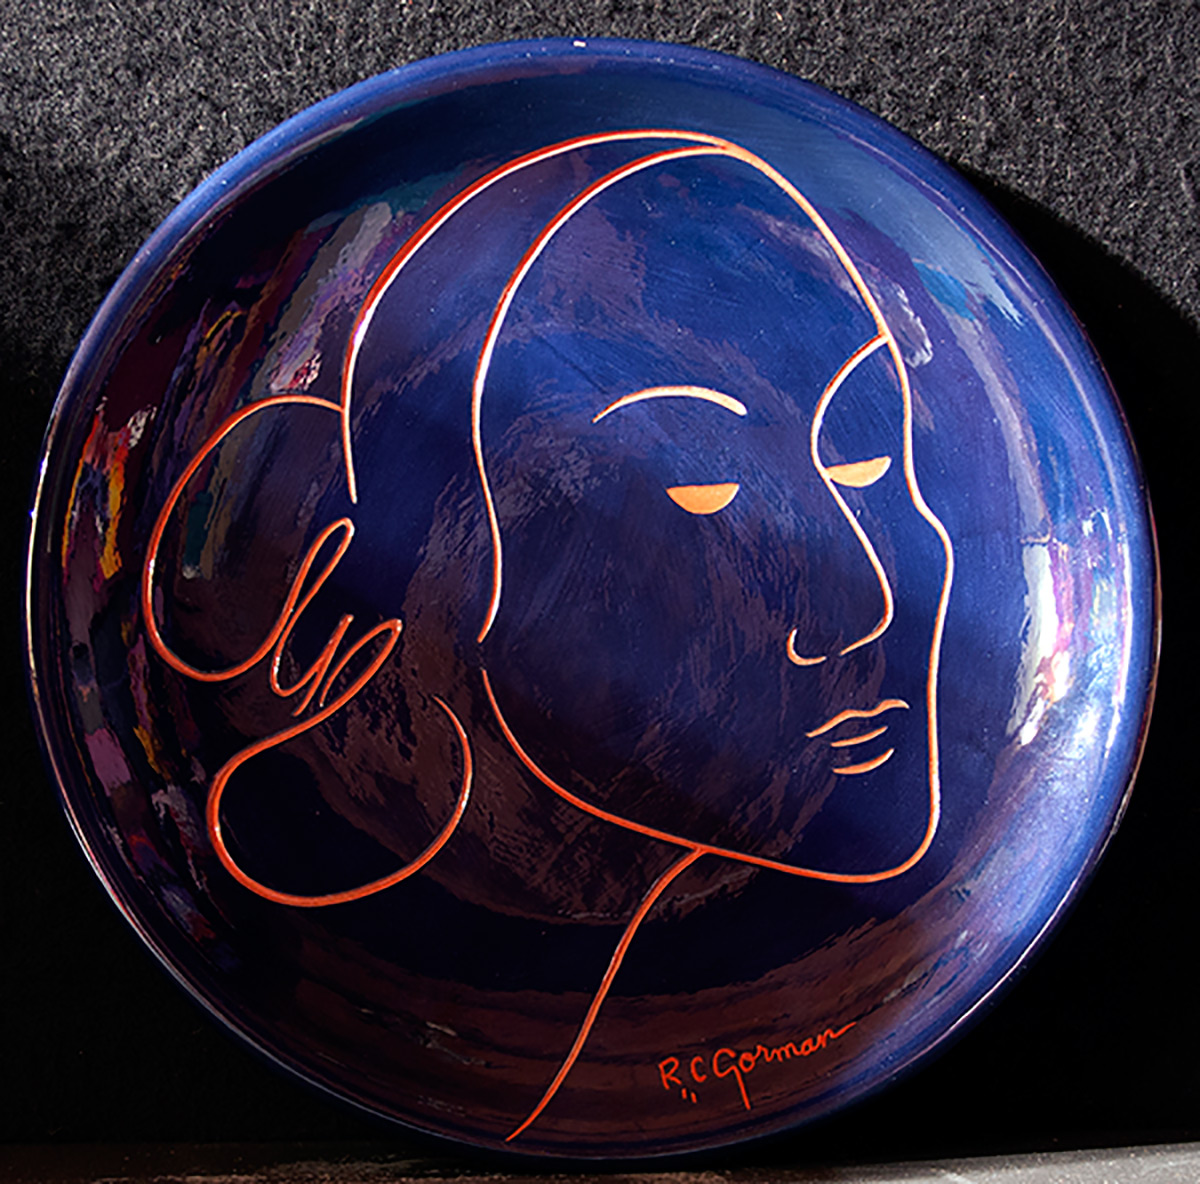 Michael mccormick gallery taos new mexico blanca ceramic plate dailygadgetfo Image collections